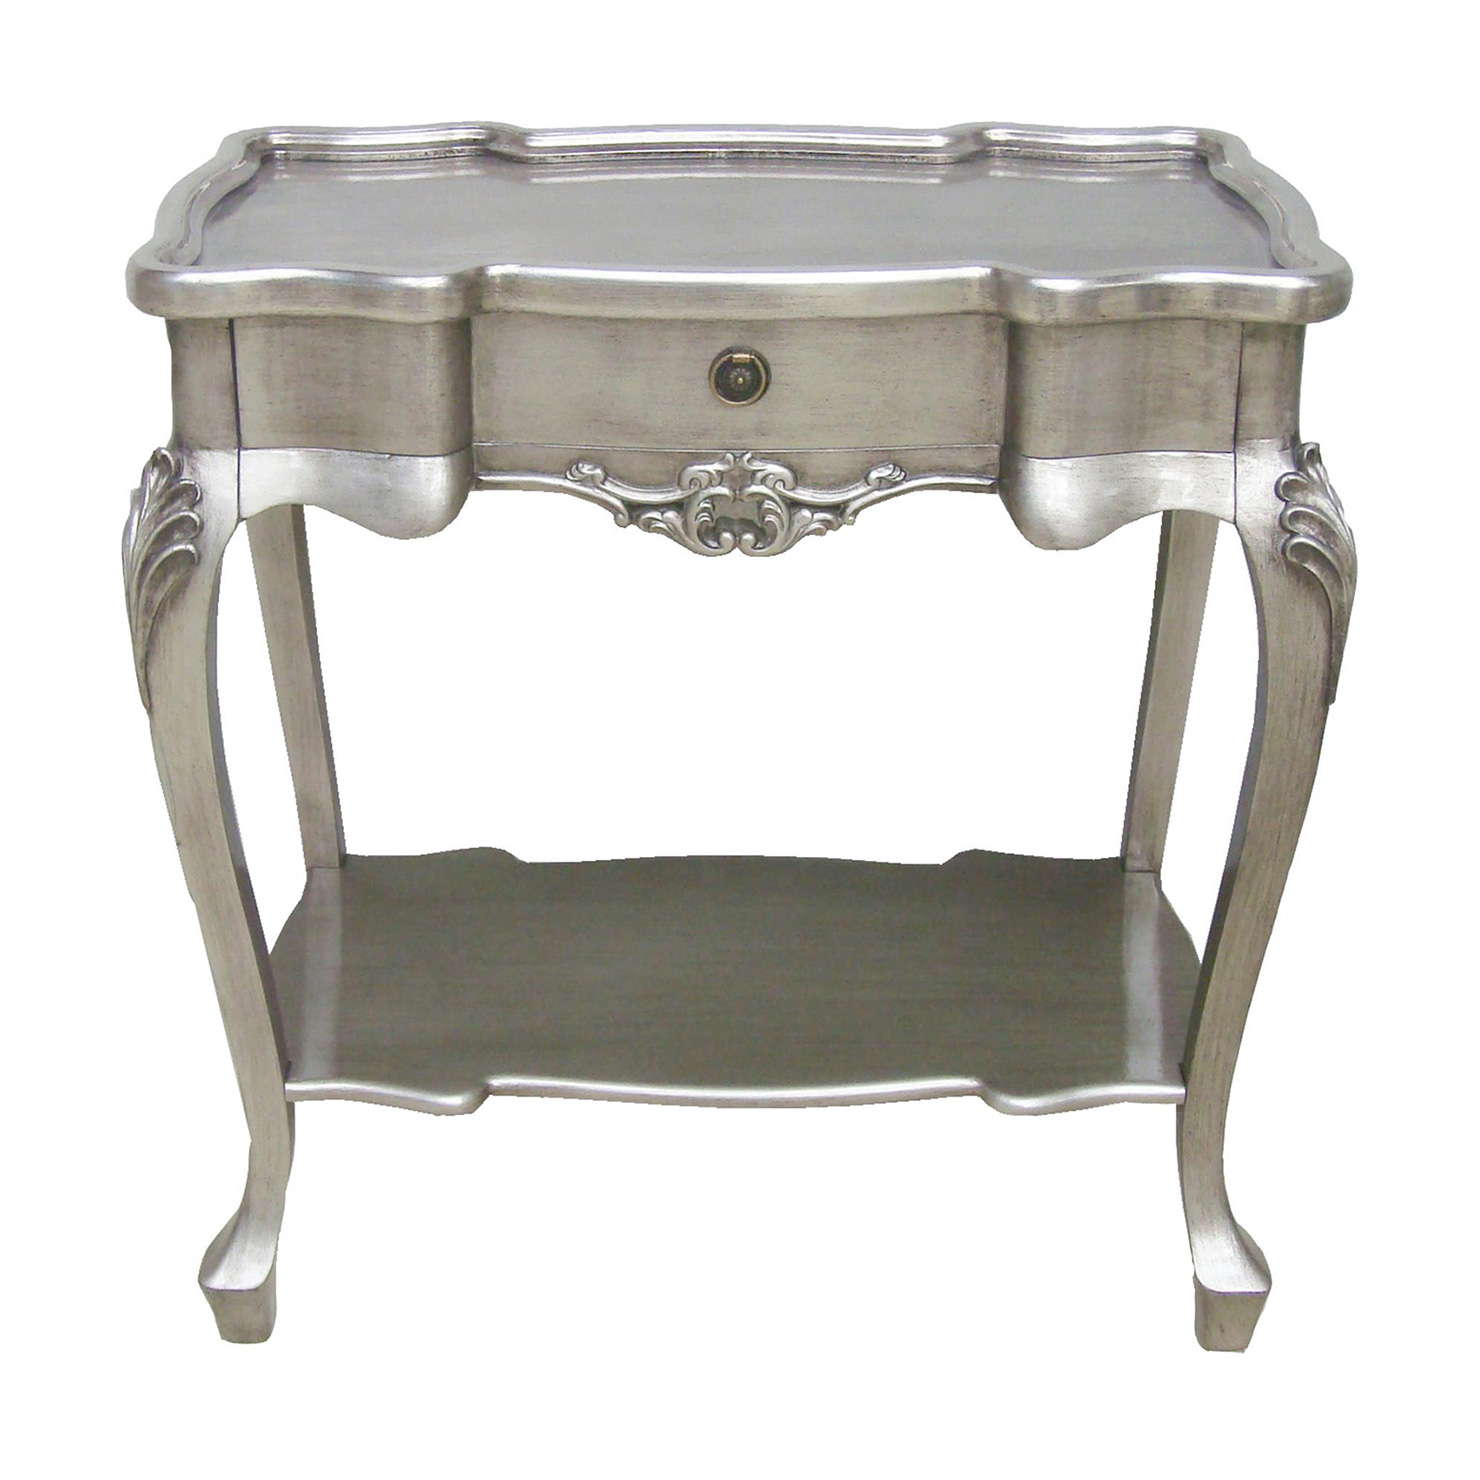 old and vintage style mirrored silver accent table with pedestal round tall chest drawers white outdoor end wooden mats decorative chairs for living room circular patio furniture